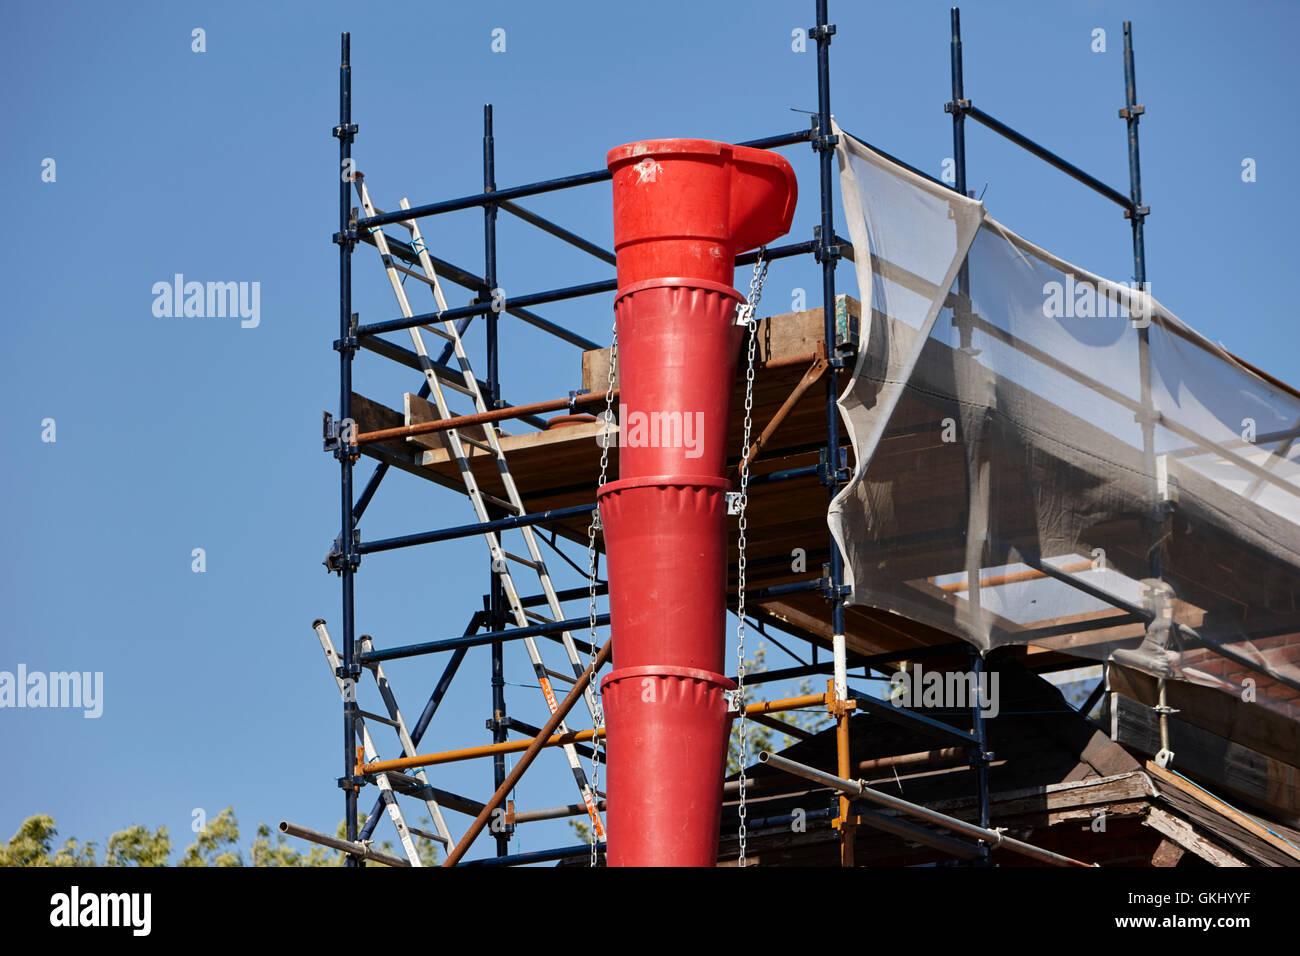 plastic rubbish chute attached to scaffolding on house extension in the uk - Stock Image